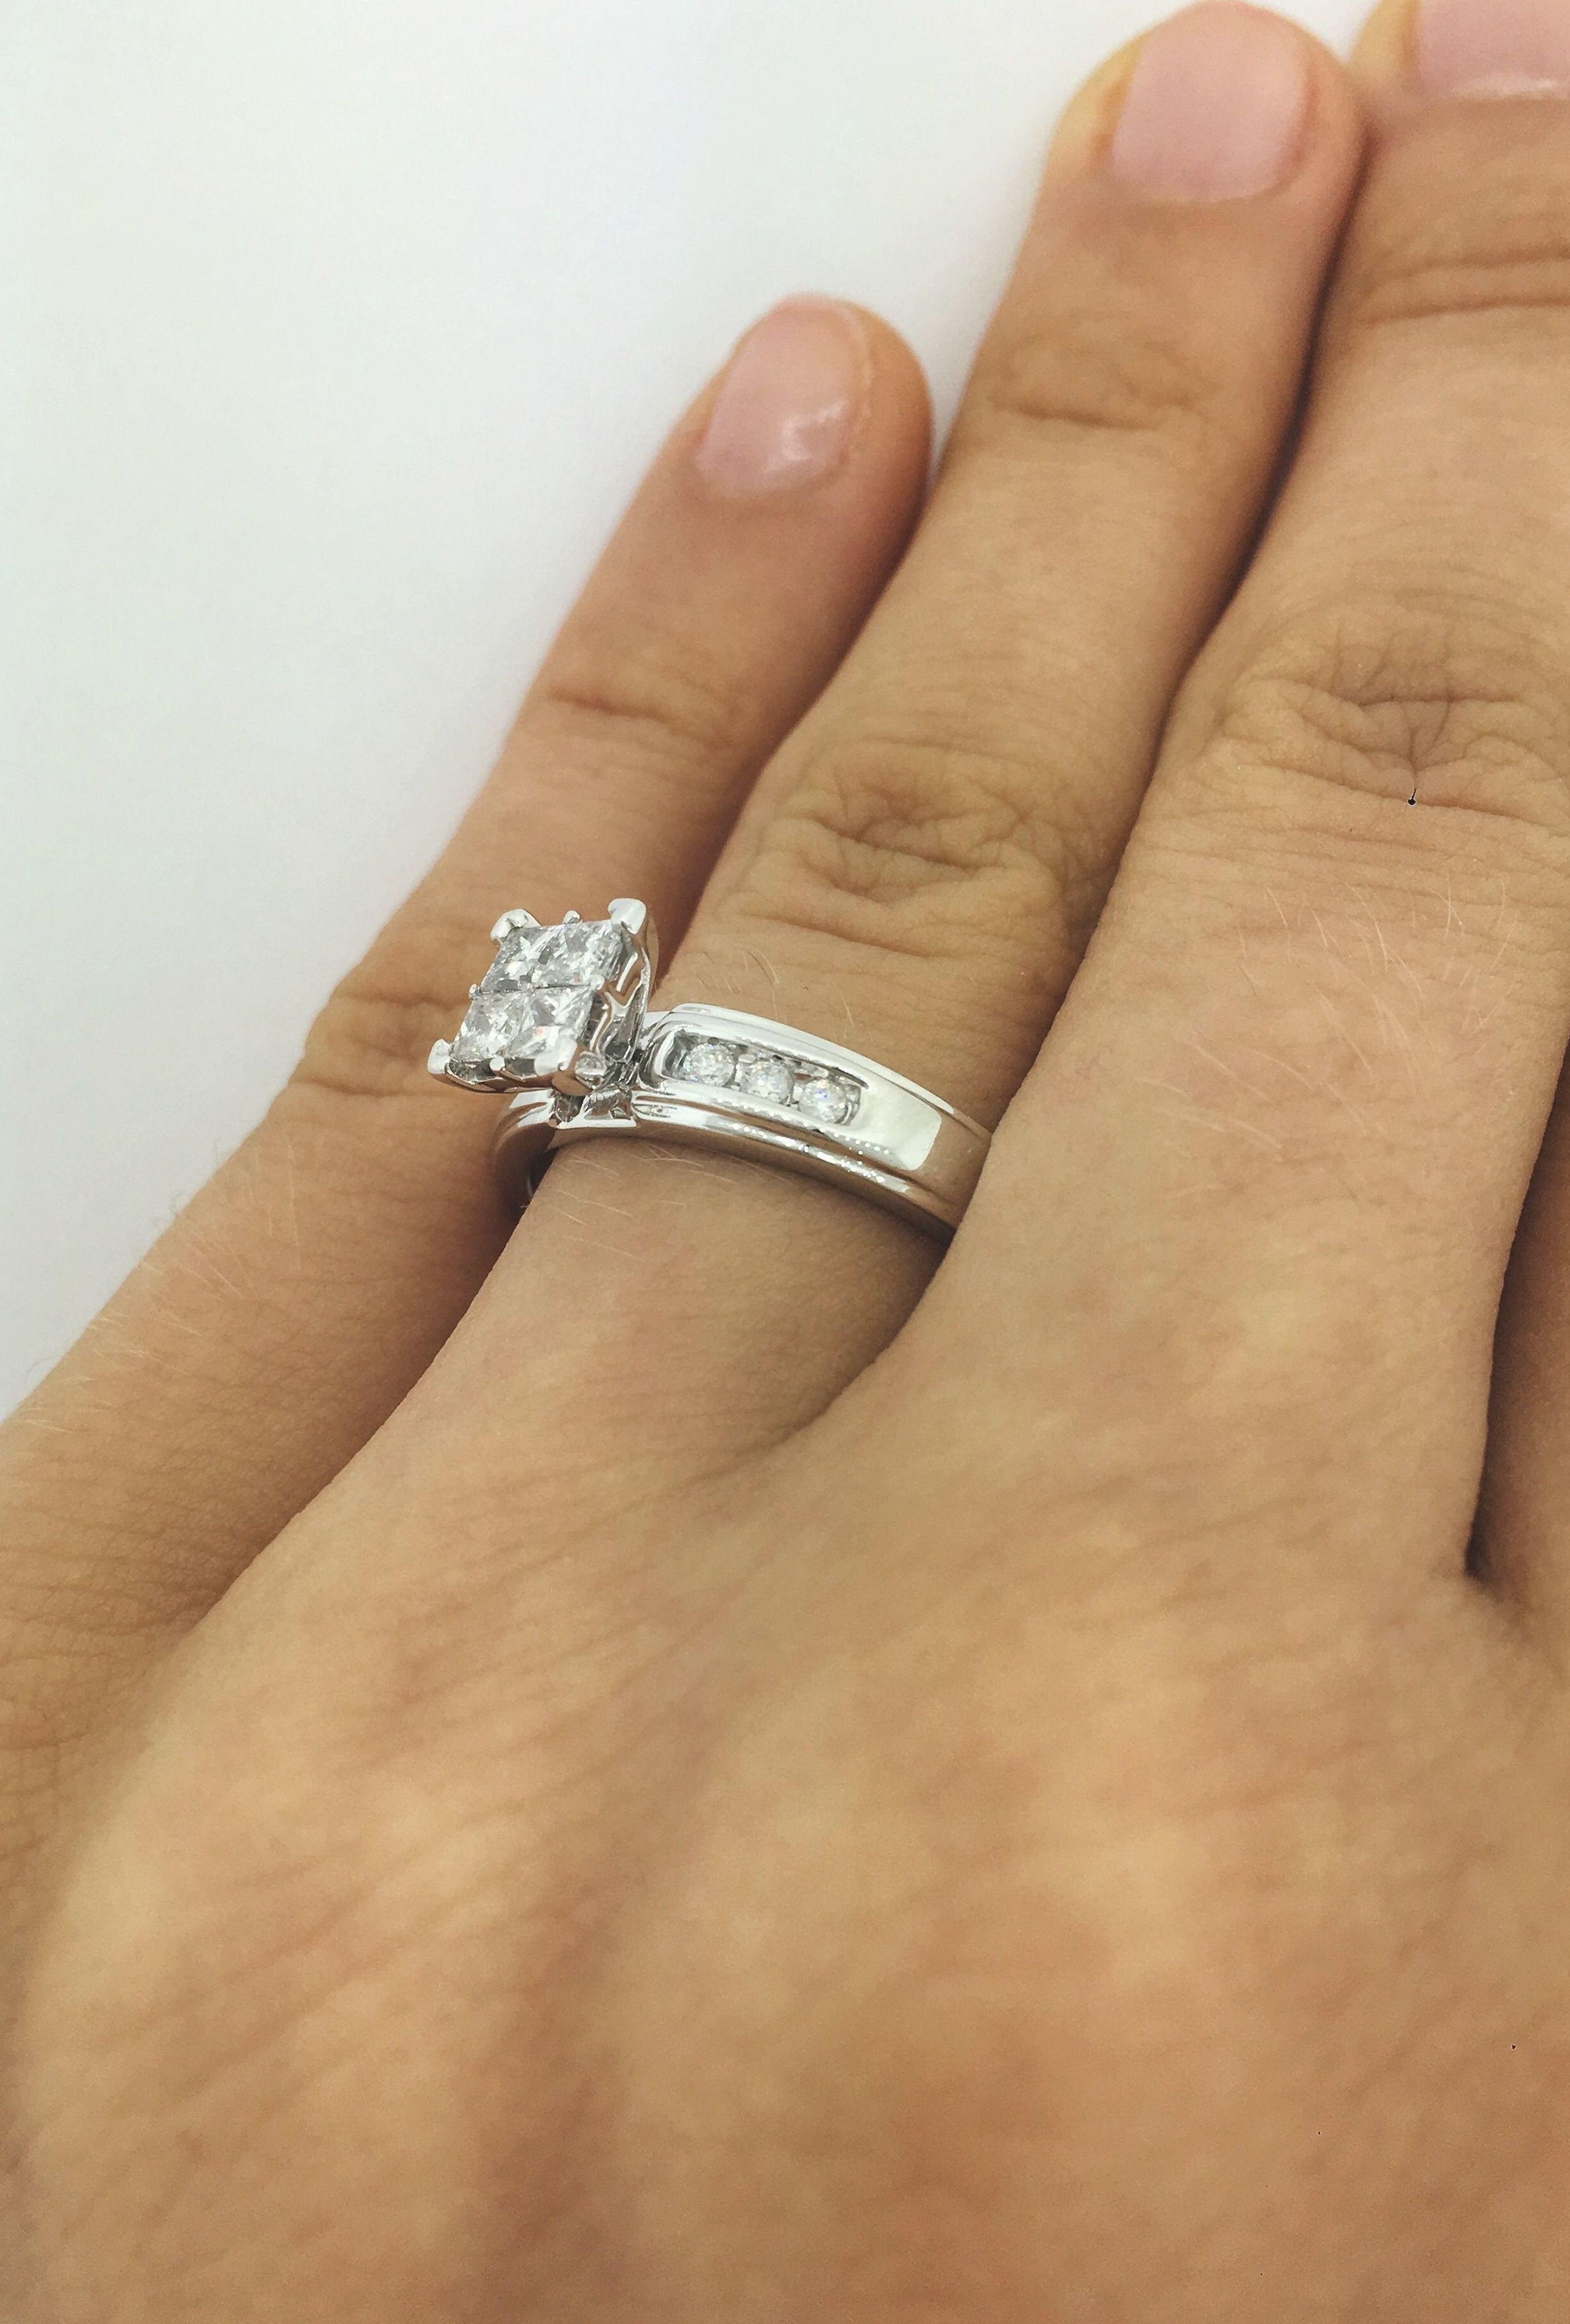 Pin On Celebrity Engagement Ring